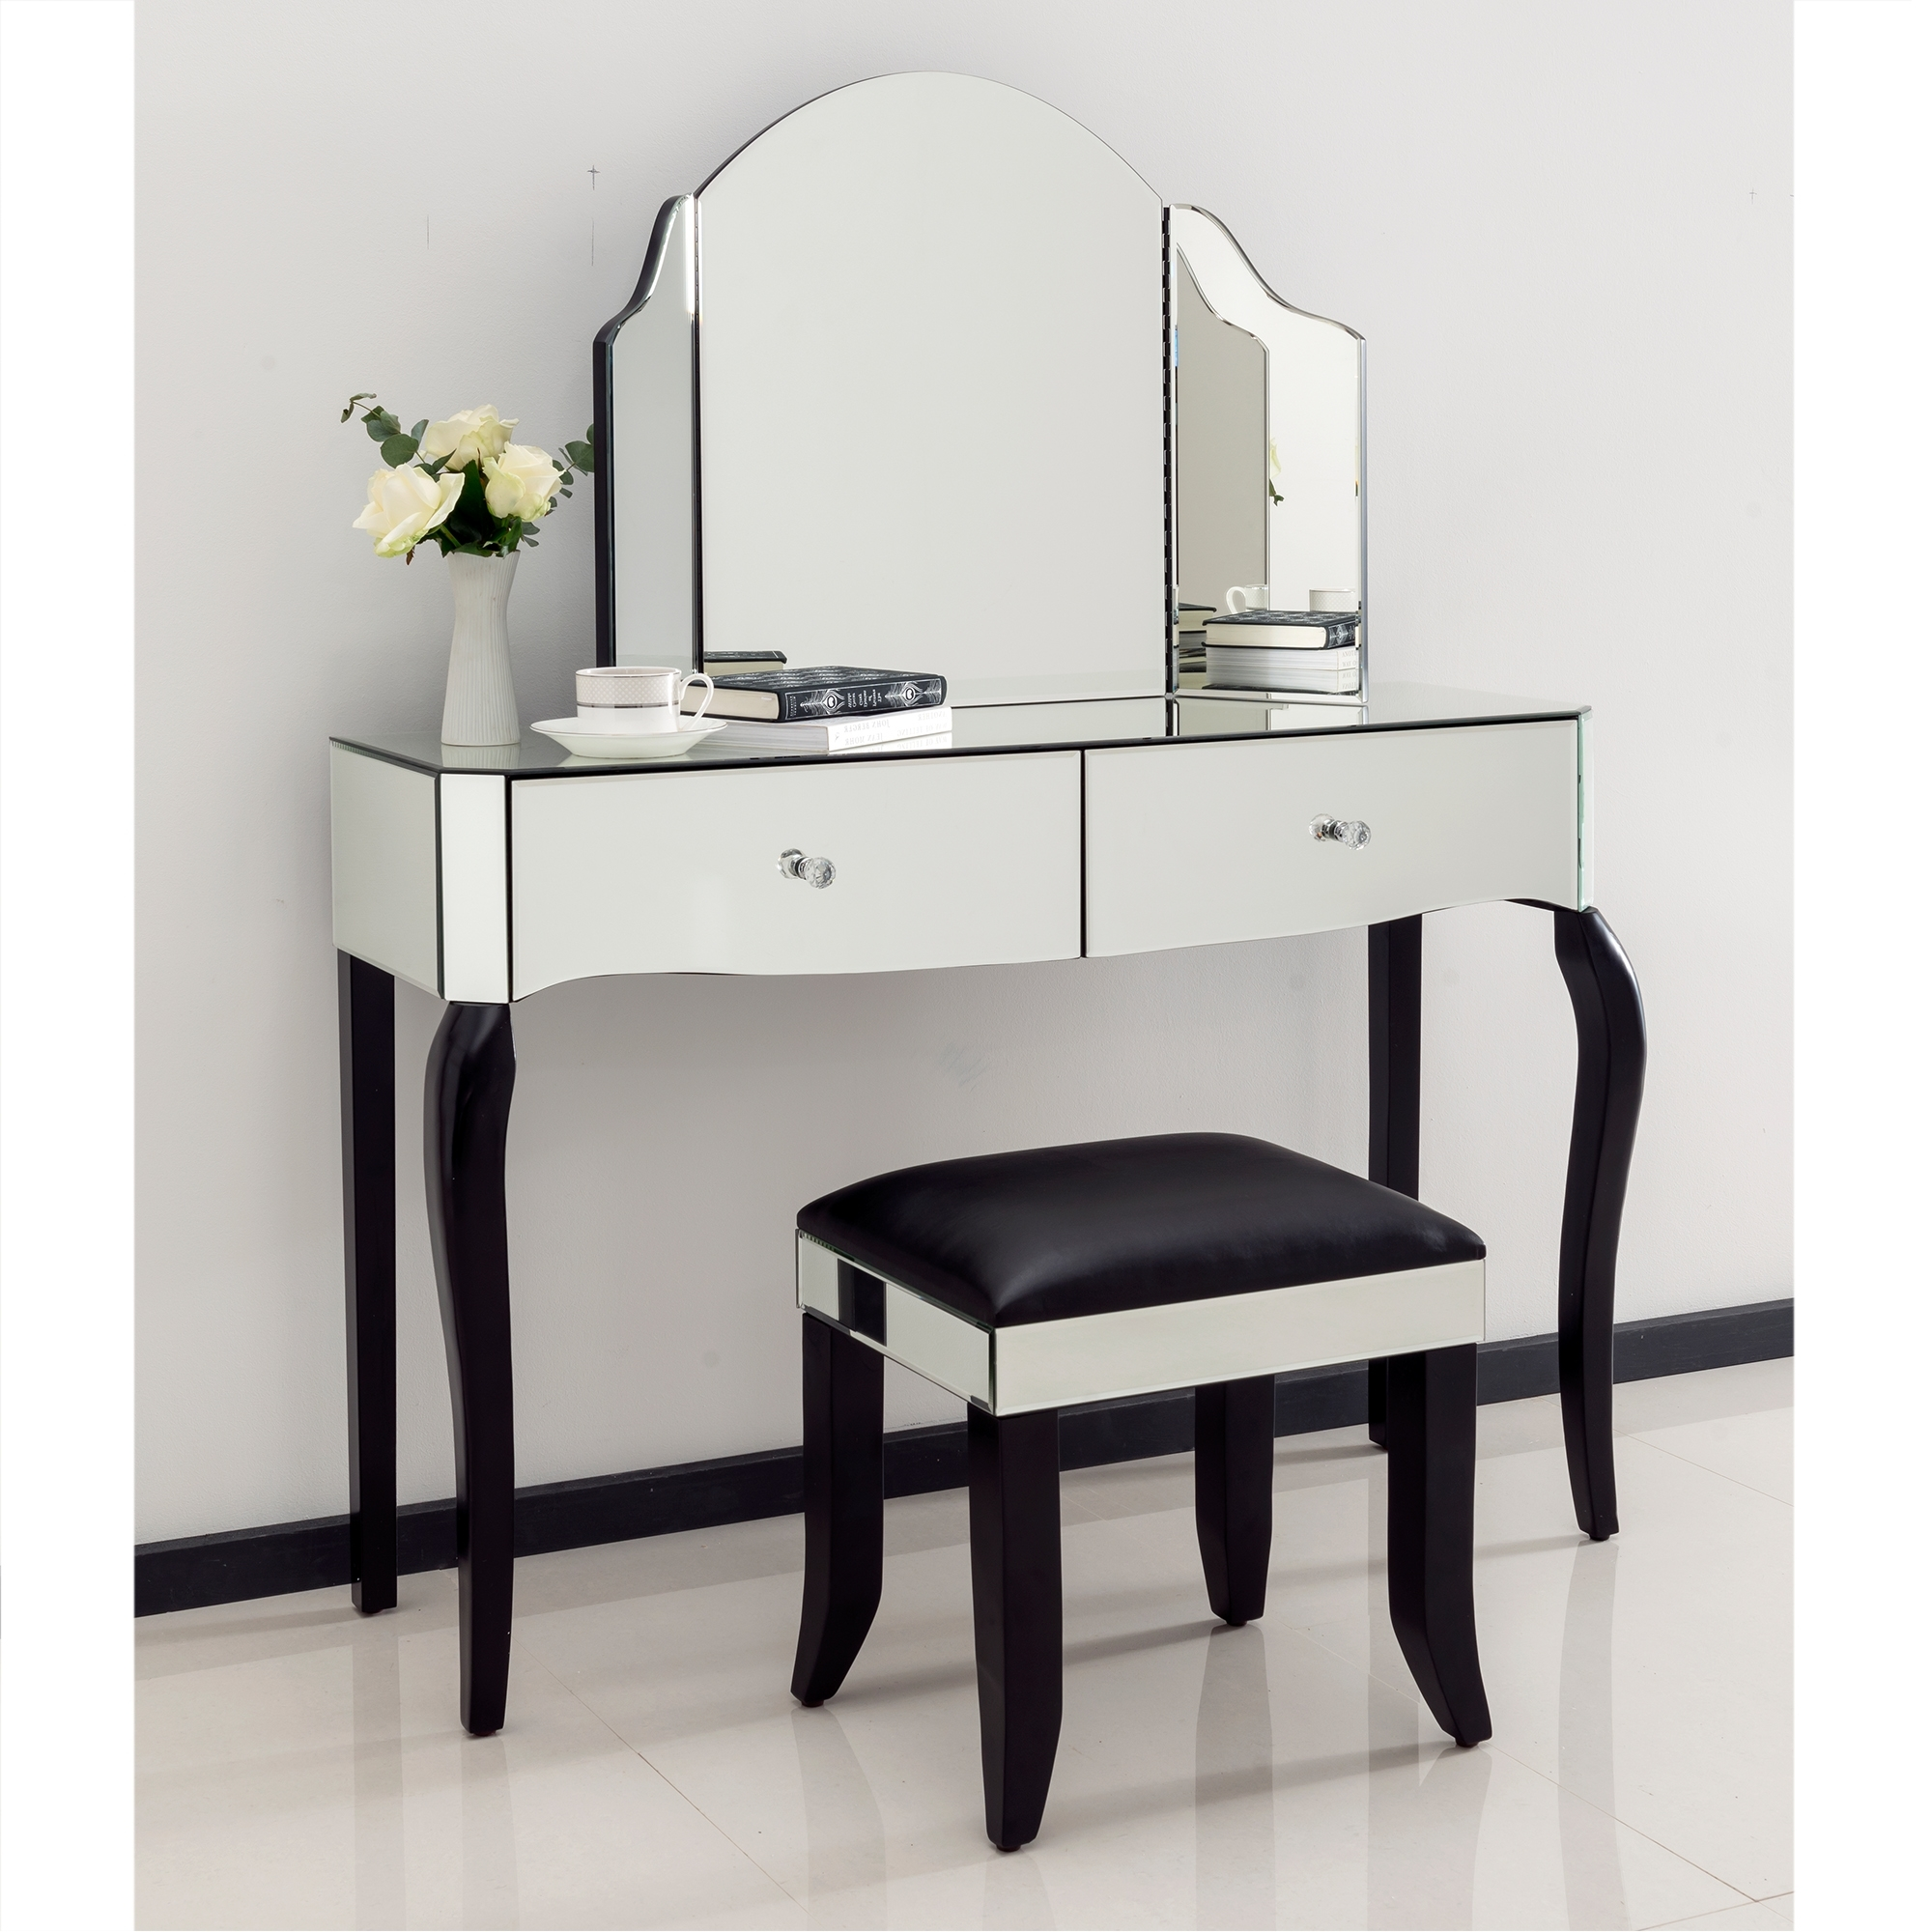 Mirrored Dressing Table romano crystal mirrored dressing table set UIFDYMW